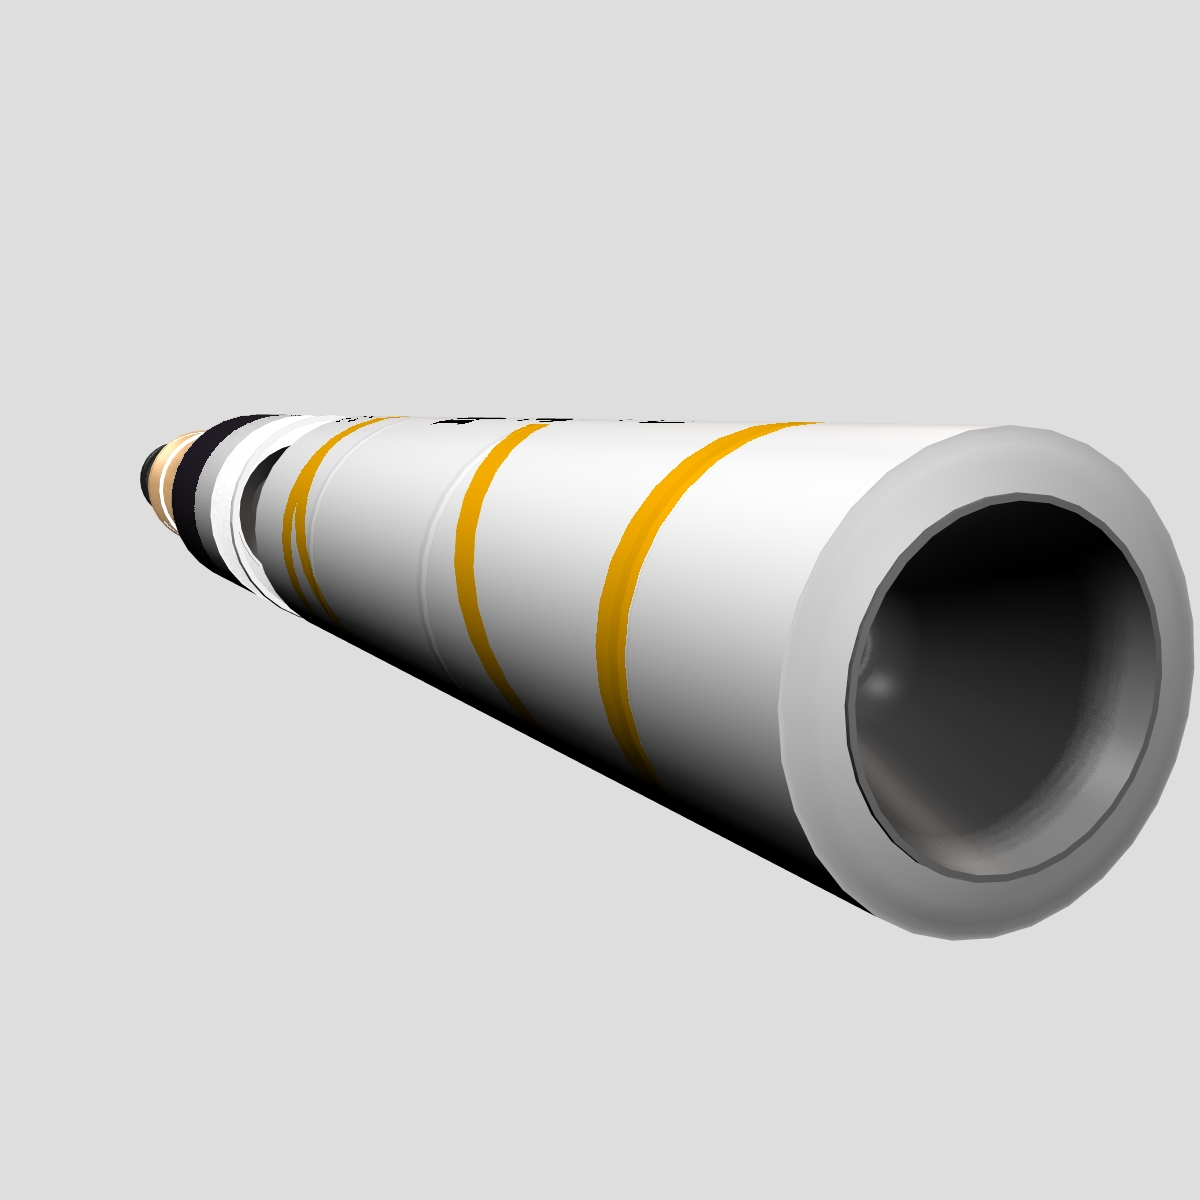 drdo agni-5-01 test missile 3d model 3ds dxf cob x other obj 136275